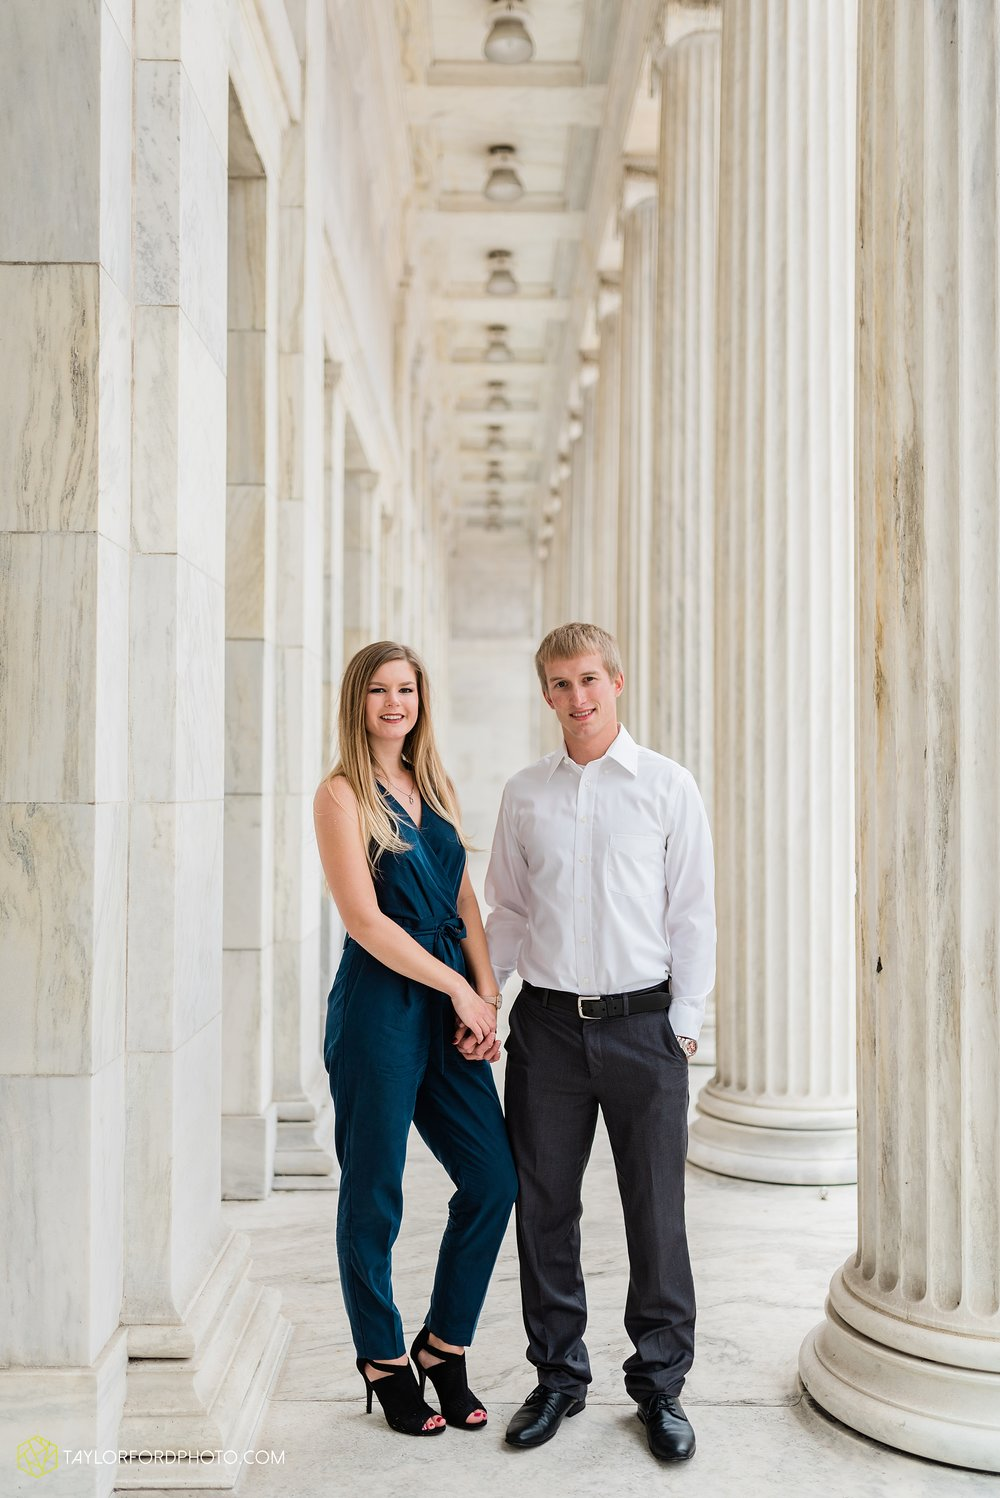 joce-chris-downtown-toledo-museum-of-art-engagement-fall-photographer-taylor-ford-photography_1480.jpg